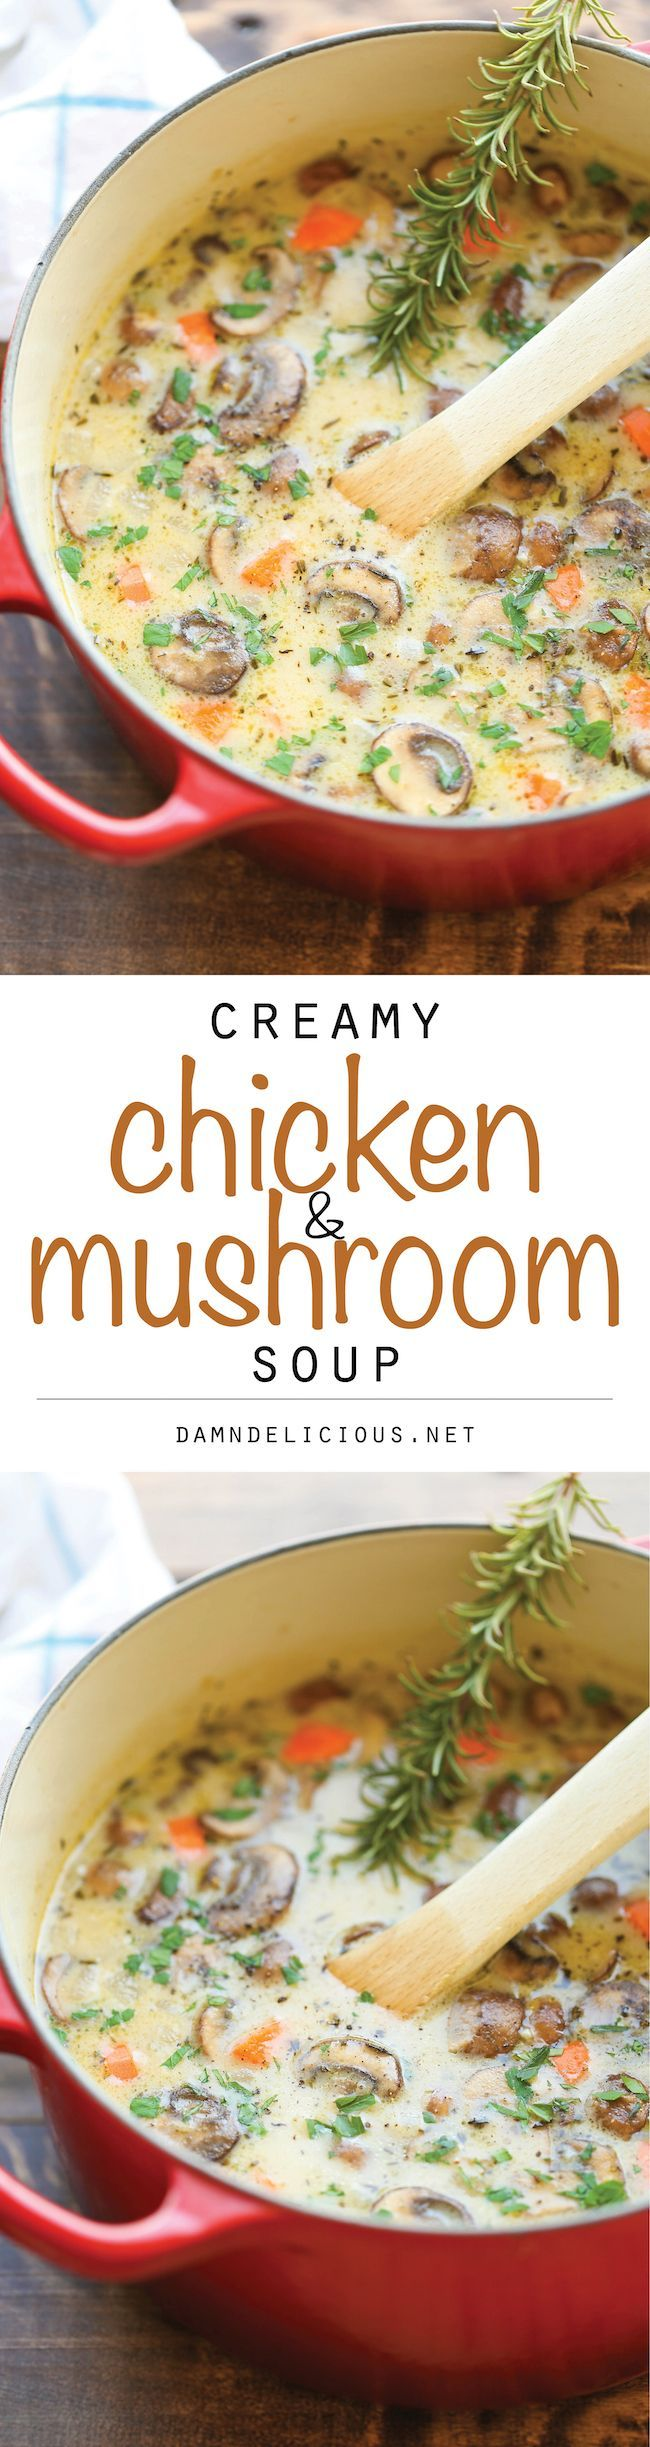 Creamy Chicken and Mushroom Soup - So cozy, so comforting and just so creamy…